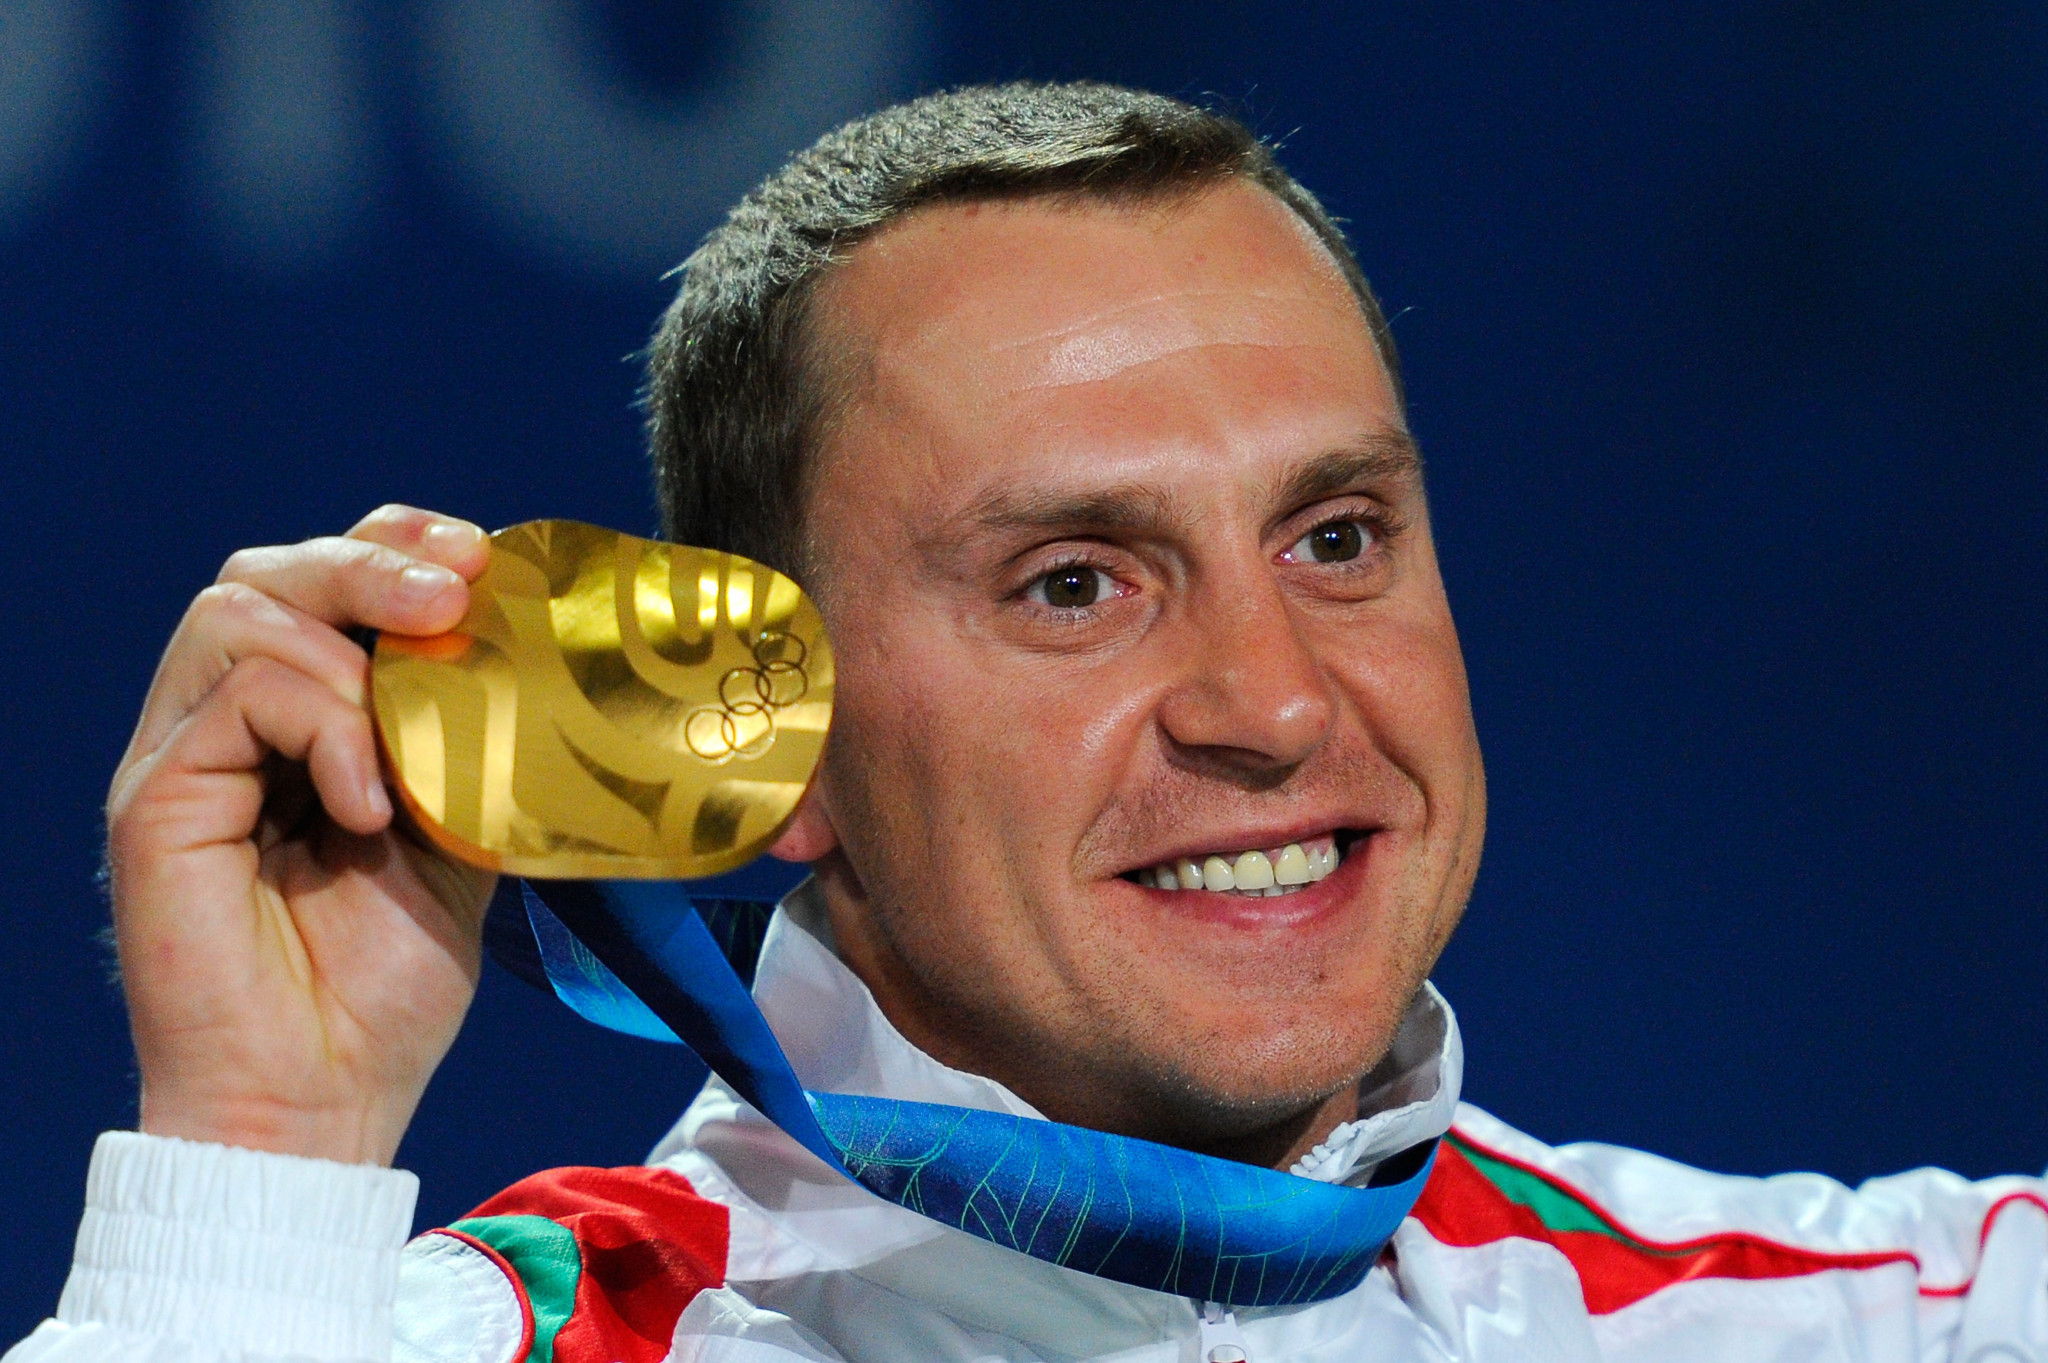 The money raised by Belarus freestyle skier Alexei Grishin after selling his Olympic gold medal he won in the aerials at Vancouver 2010 is to be used to help pay a friend's medical expenses ©Getty Images